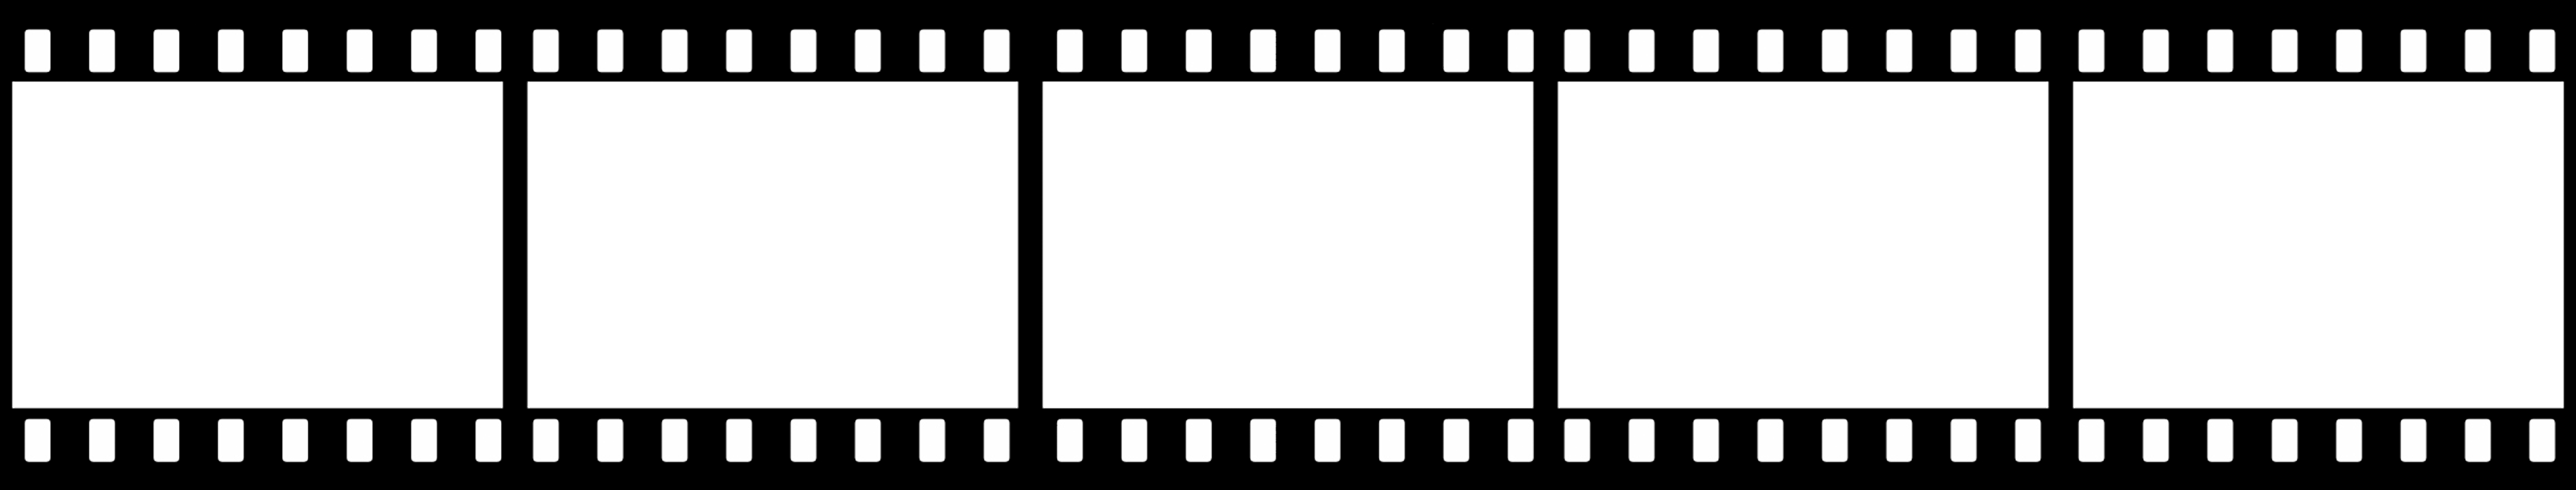 Black And White Film Strip PNG - 157795